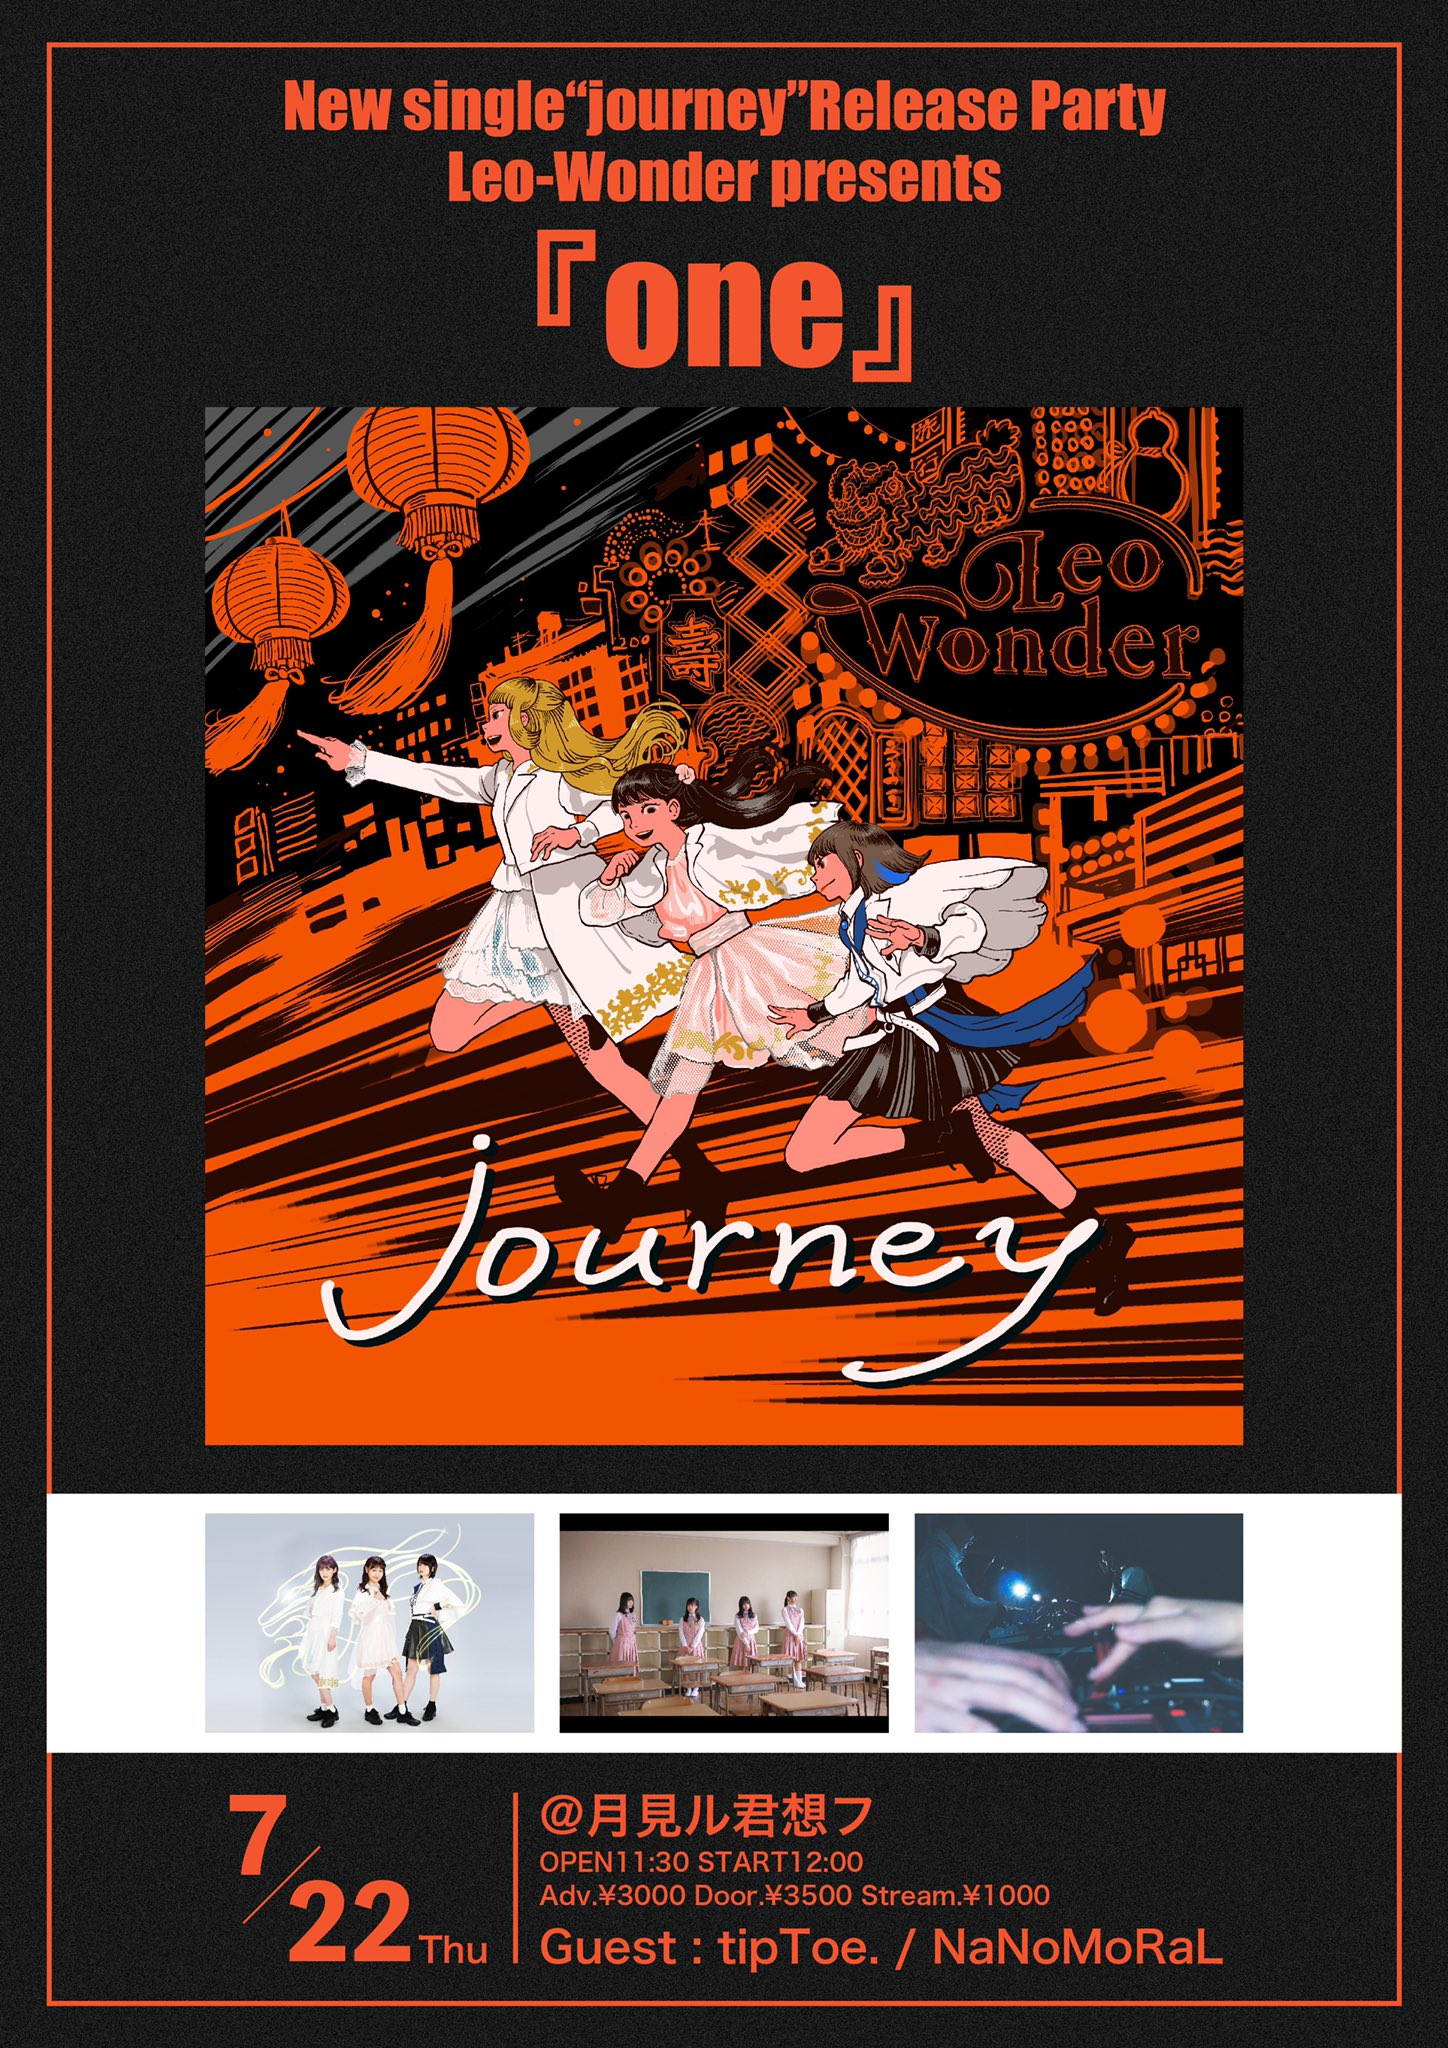 """New single""""journey""""Release Party Leo-Wonder presents 『one』"""